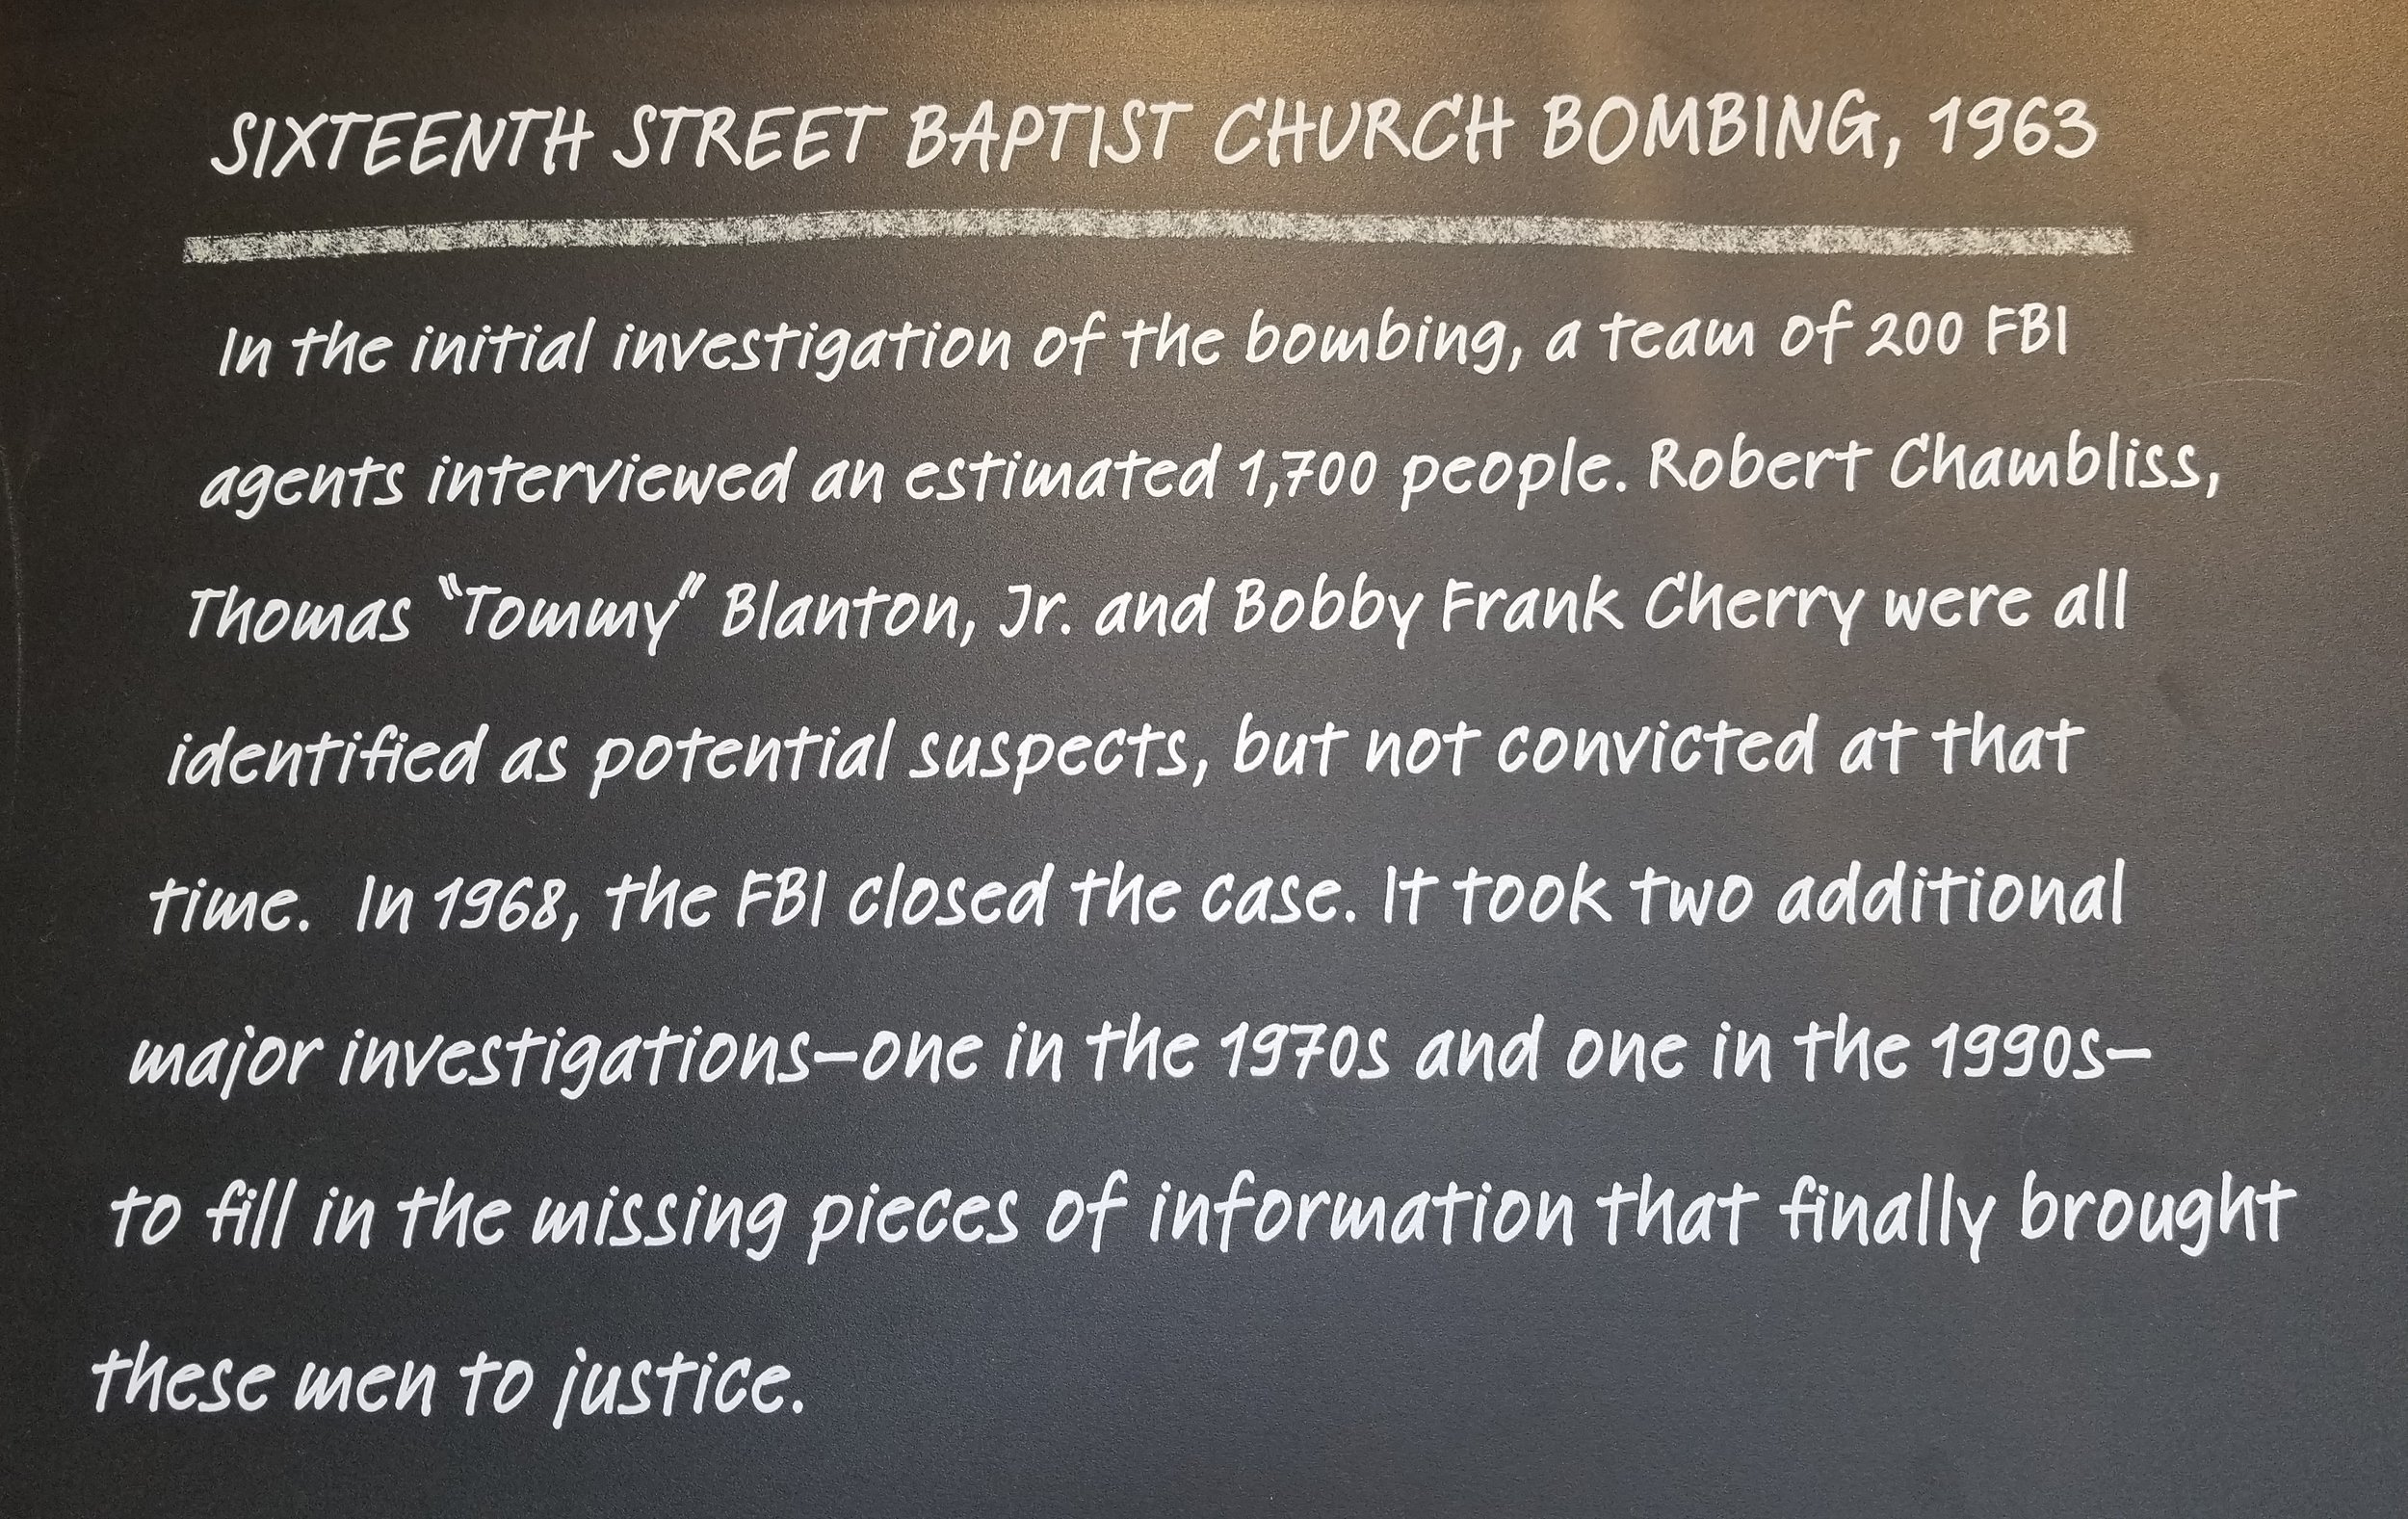 From the  Birmingham Civil Rights Institute . I was really shocked that the church bombing suspects were not convicted until decades after the bombing. This exhibit did a great job of detailing and breaking down the events of the bombing and the multiple investigations that eventual convicted all three men